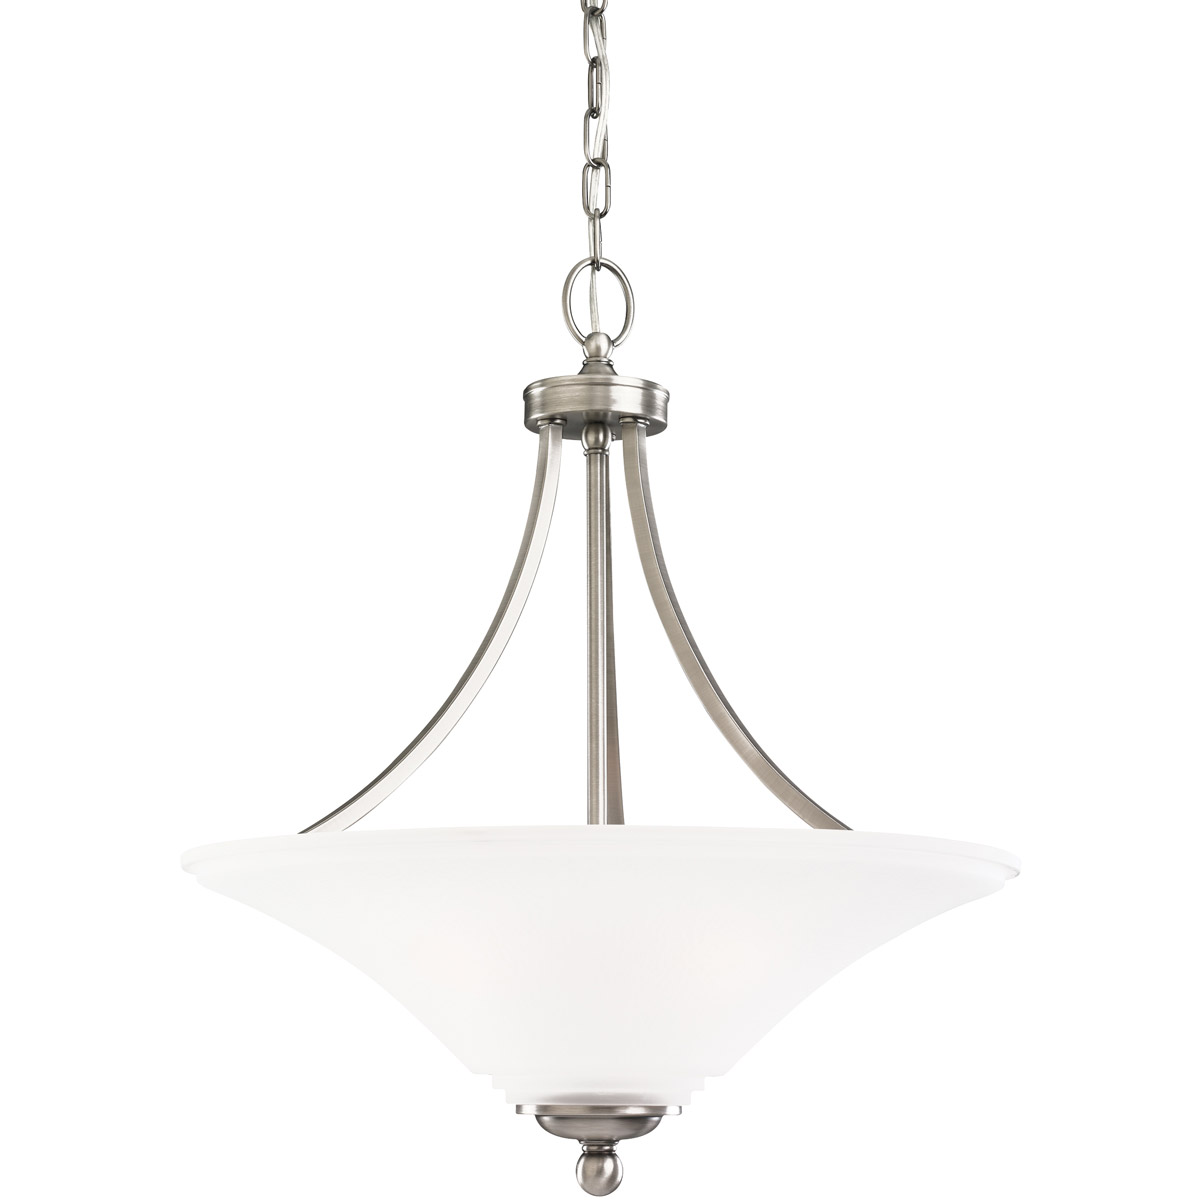 Sea Gull Lighting Somerton 3 Light Pendant in Antique Brushed Nickel 65376-965